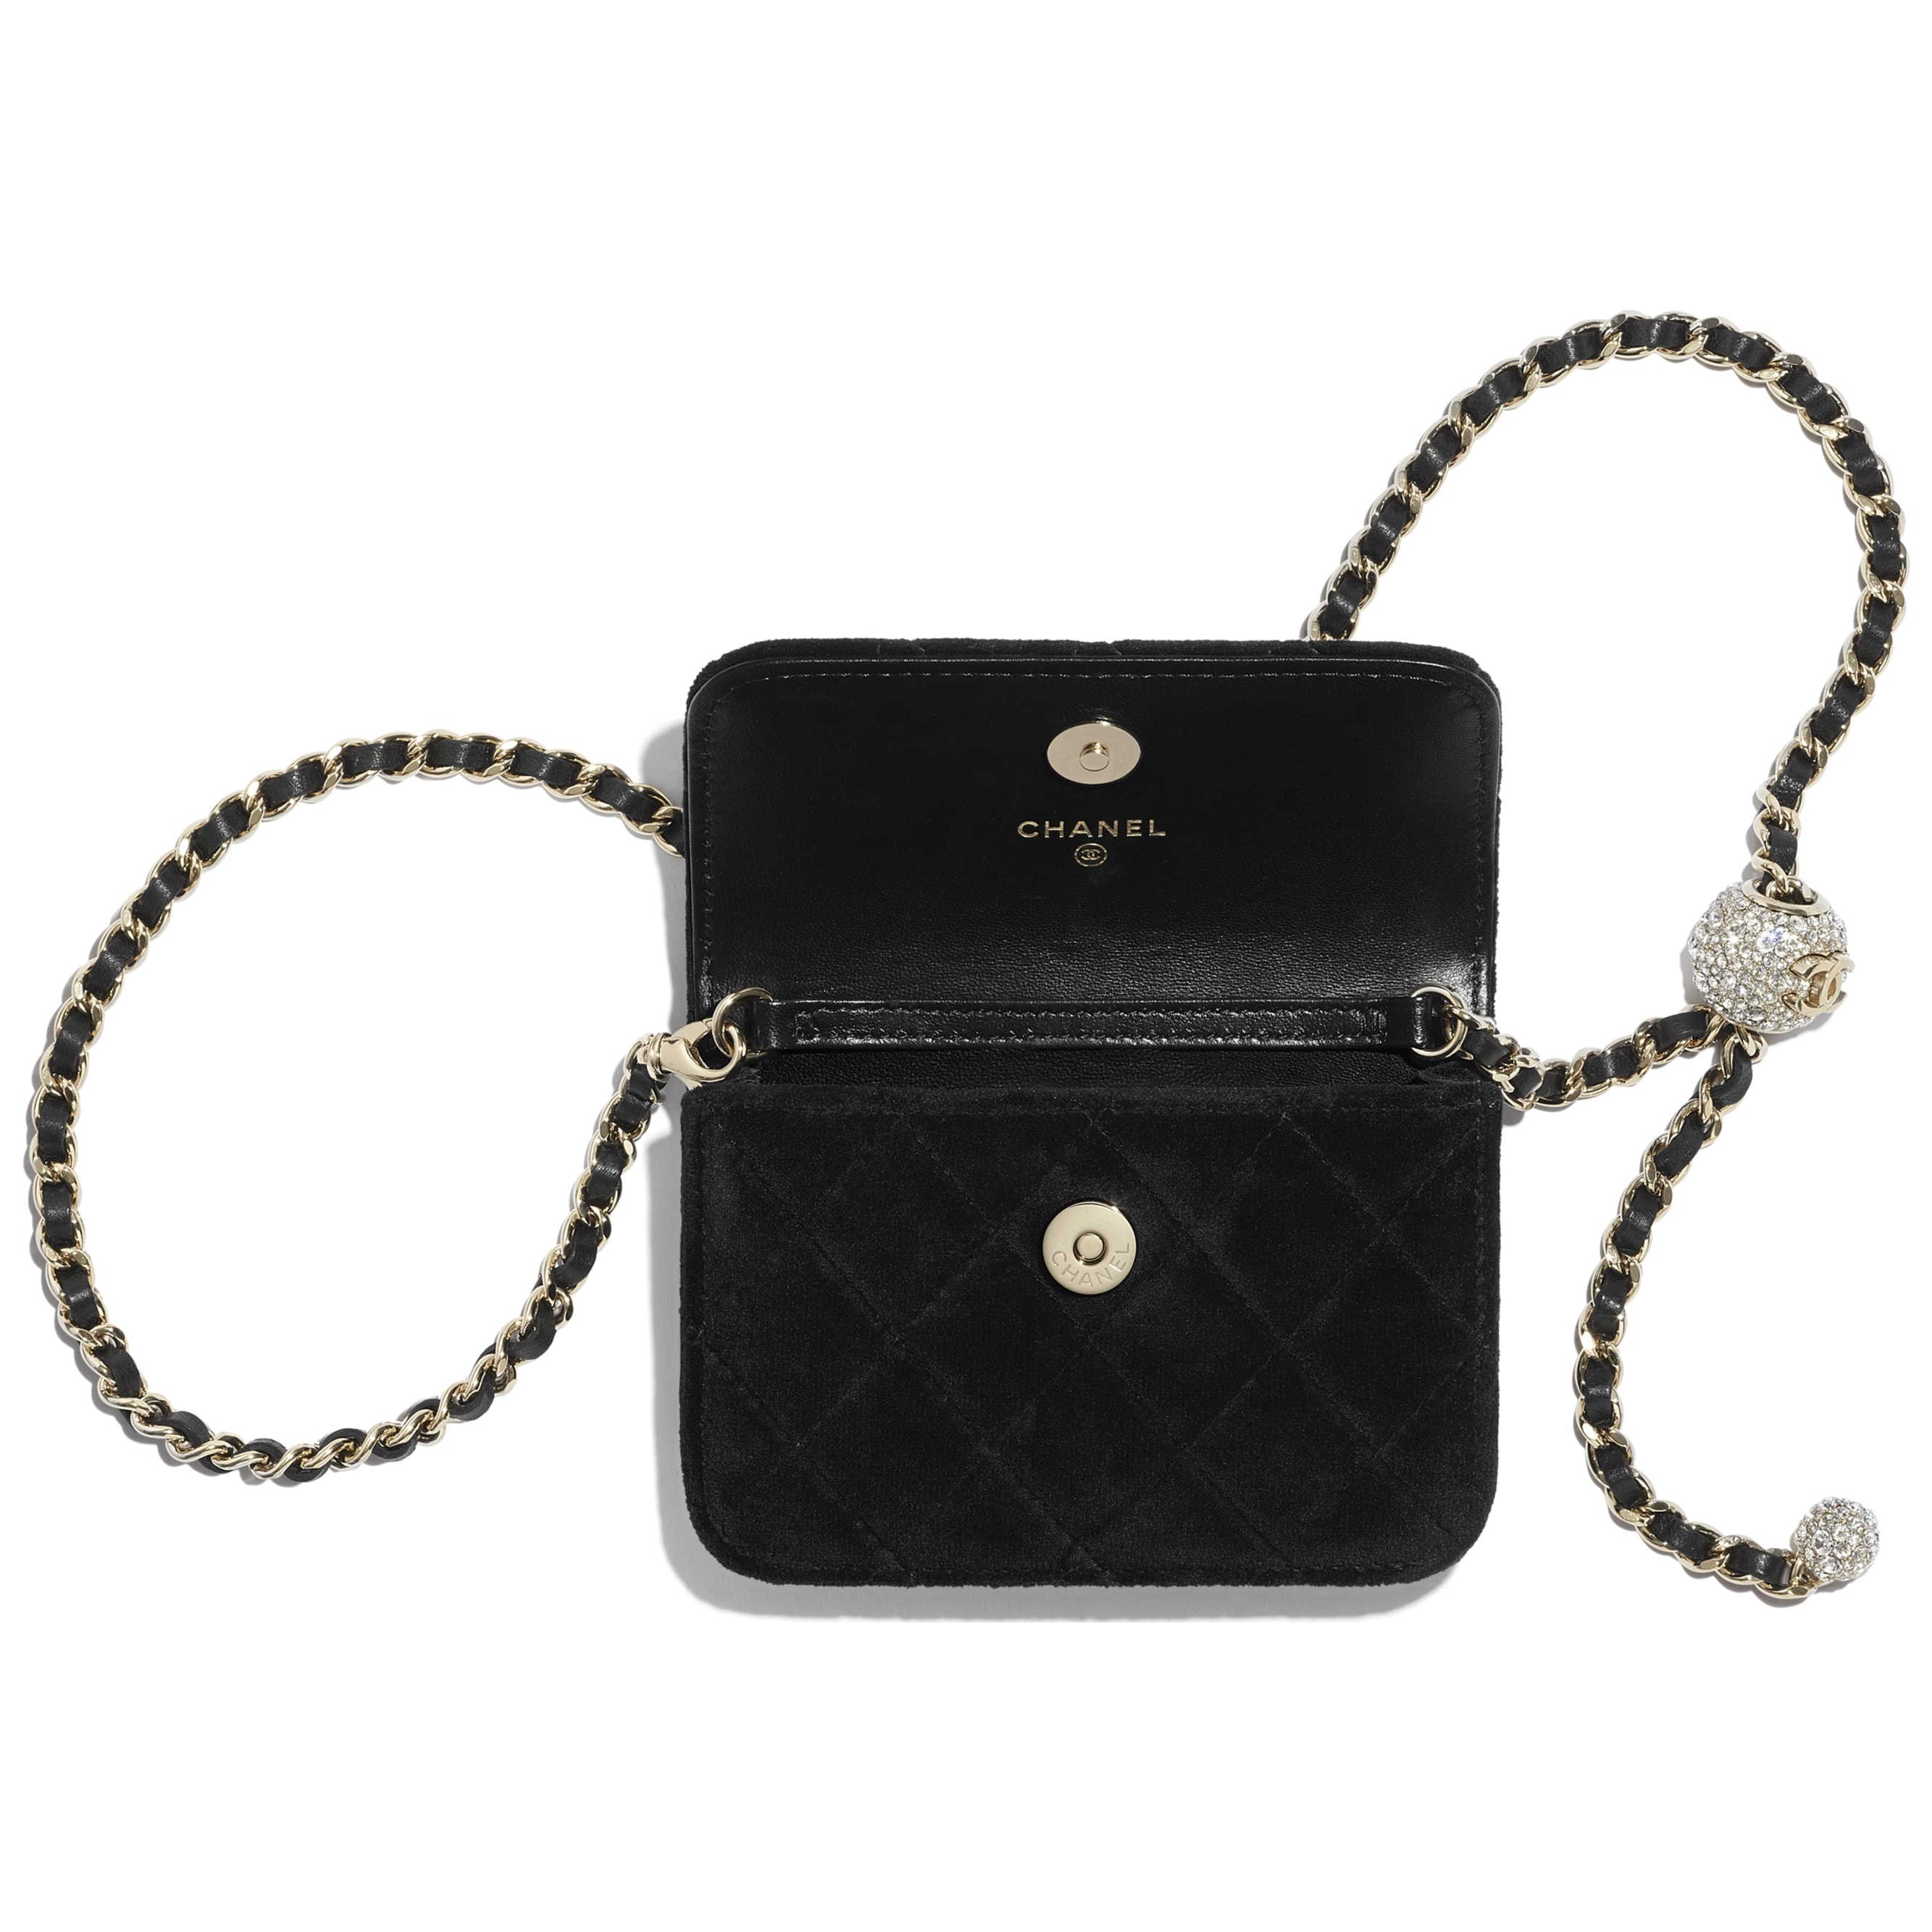 Clutch with Chain - Black - Velvet, Strass & Gold-Tone Metal - CHANEL - Alternative view - see standard sized version